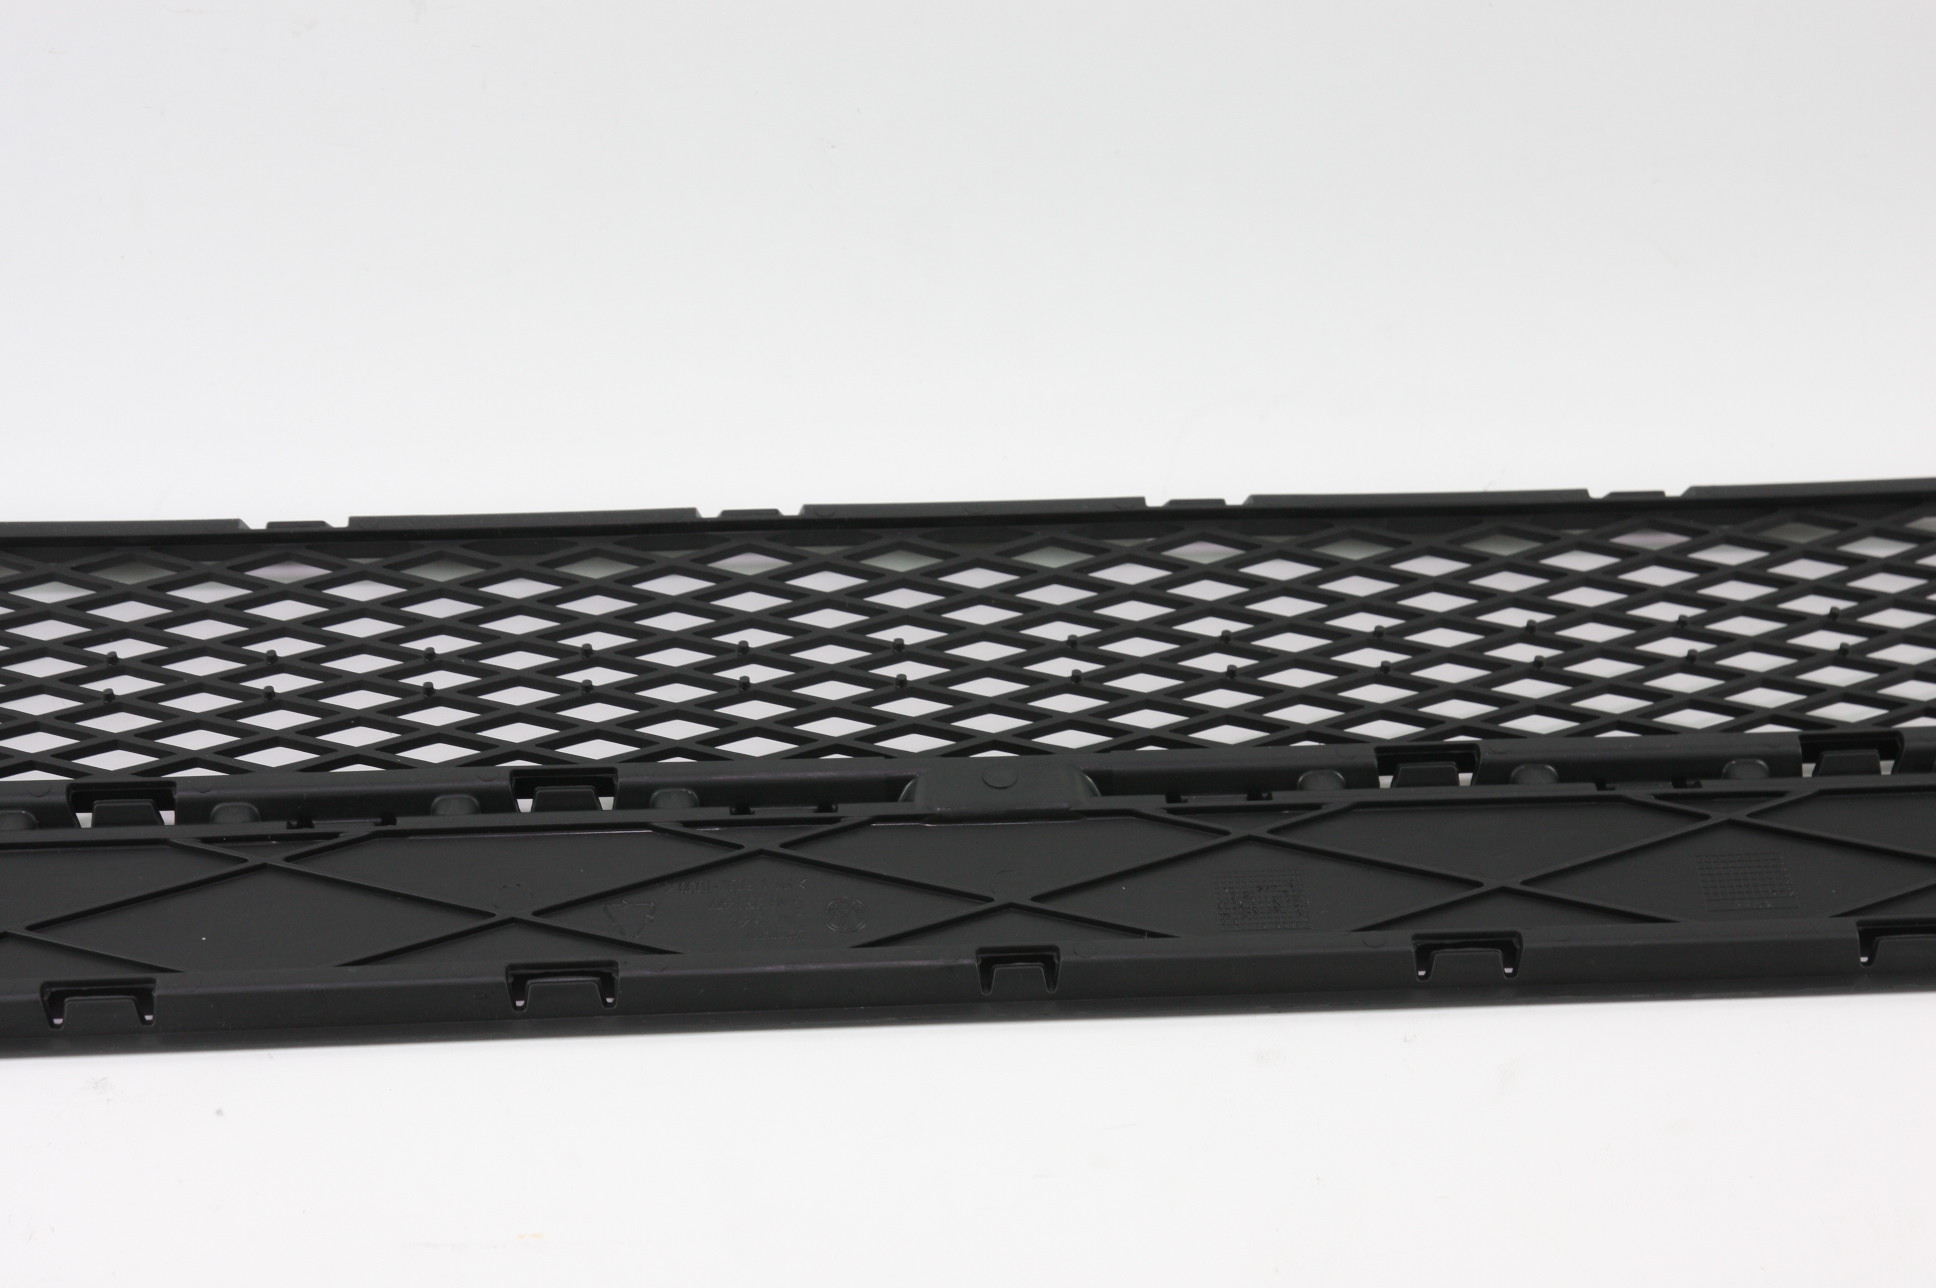 New OEM 5N08536779B9 Volkswagen VW Tiguan Front Bumper Lower Bottom Grille Grill - image 8